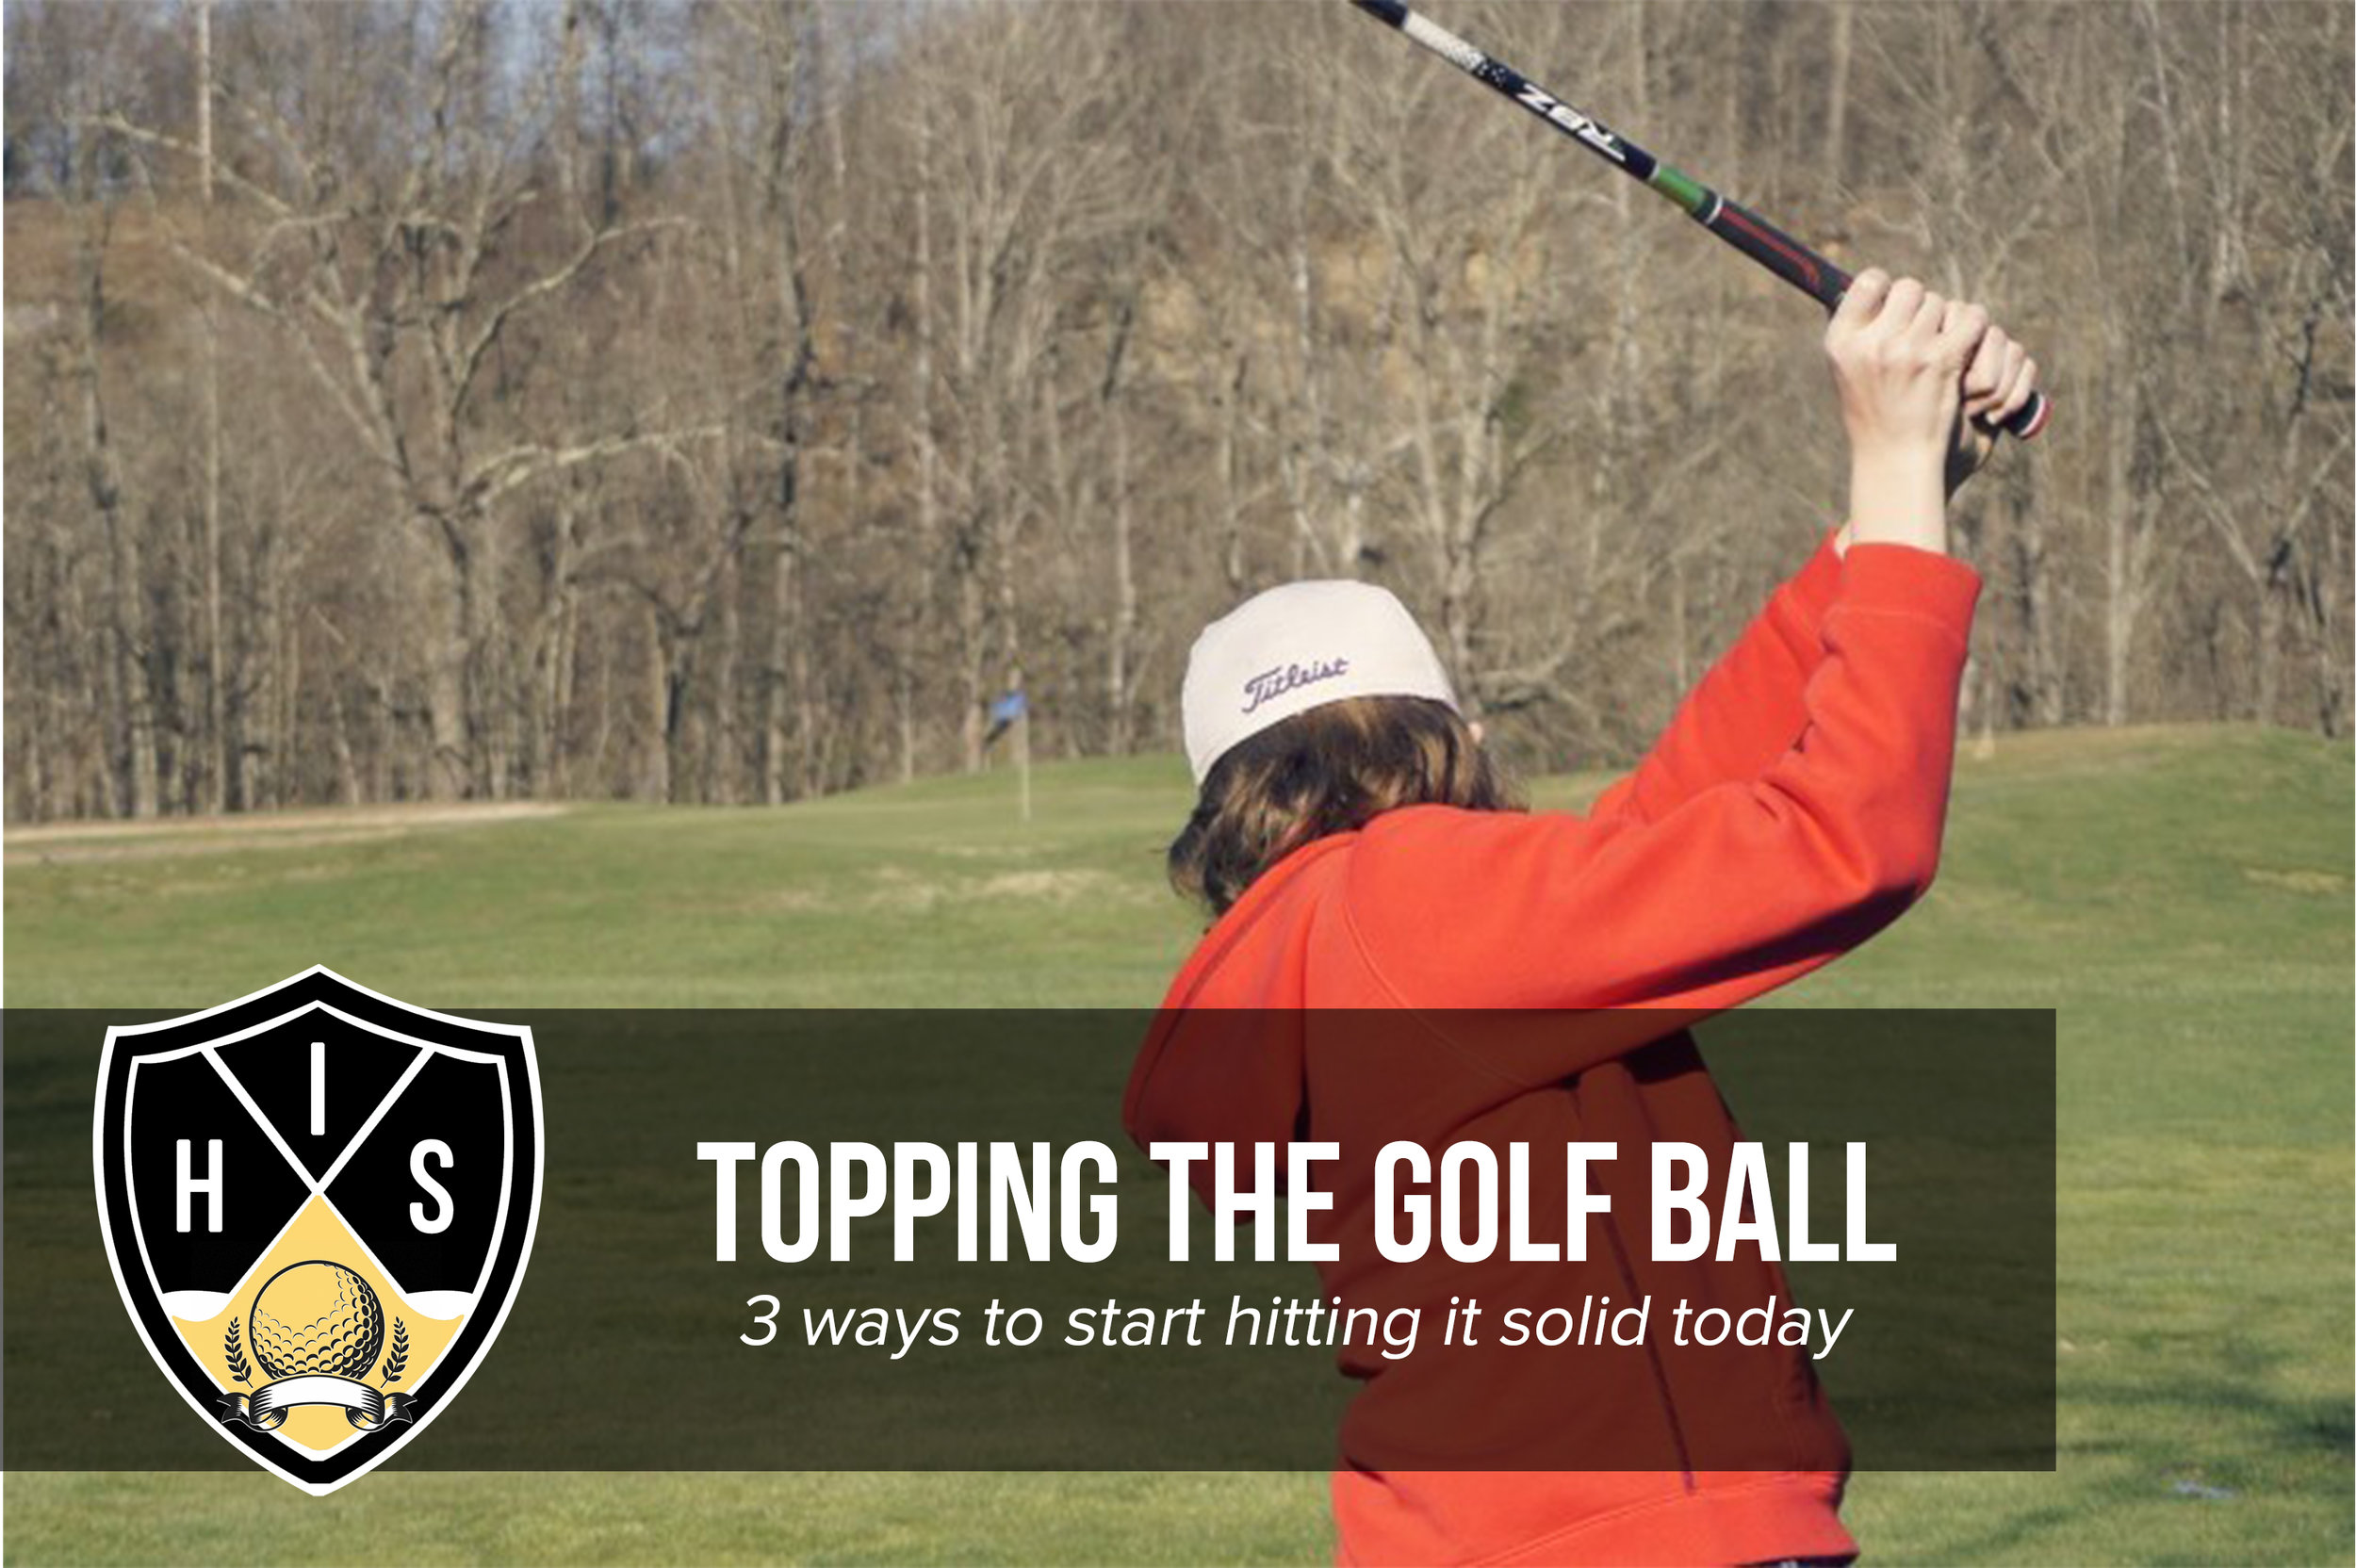 Topping The Golf Ball